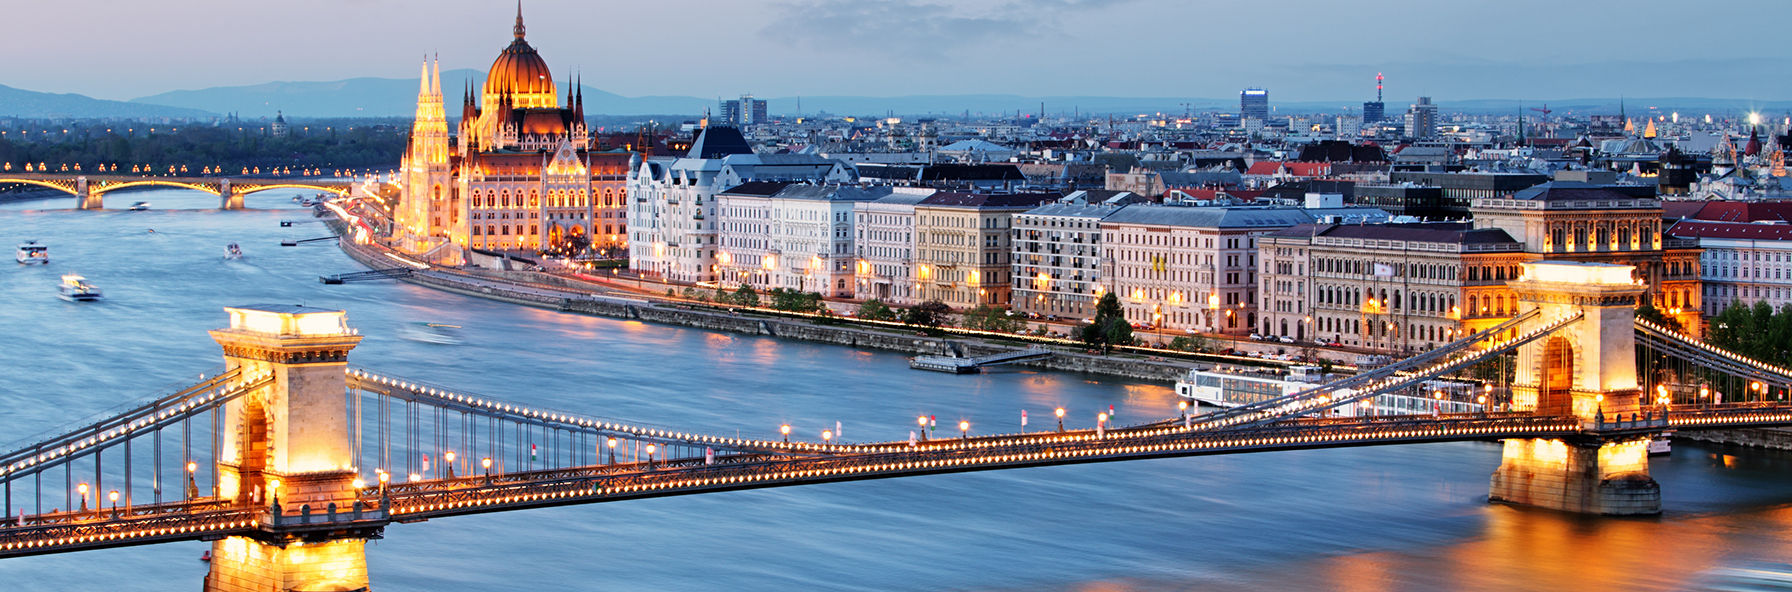 Make the most of your stay in Hungary.